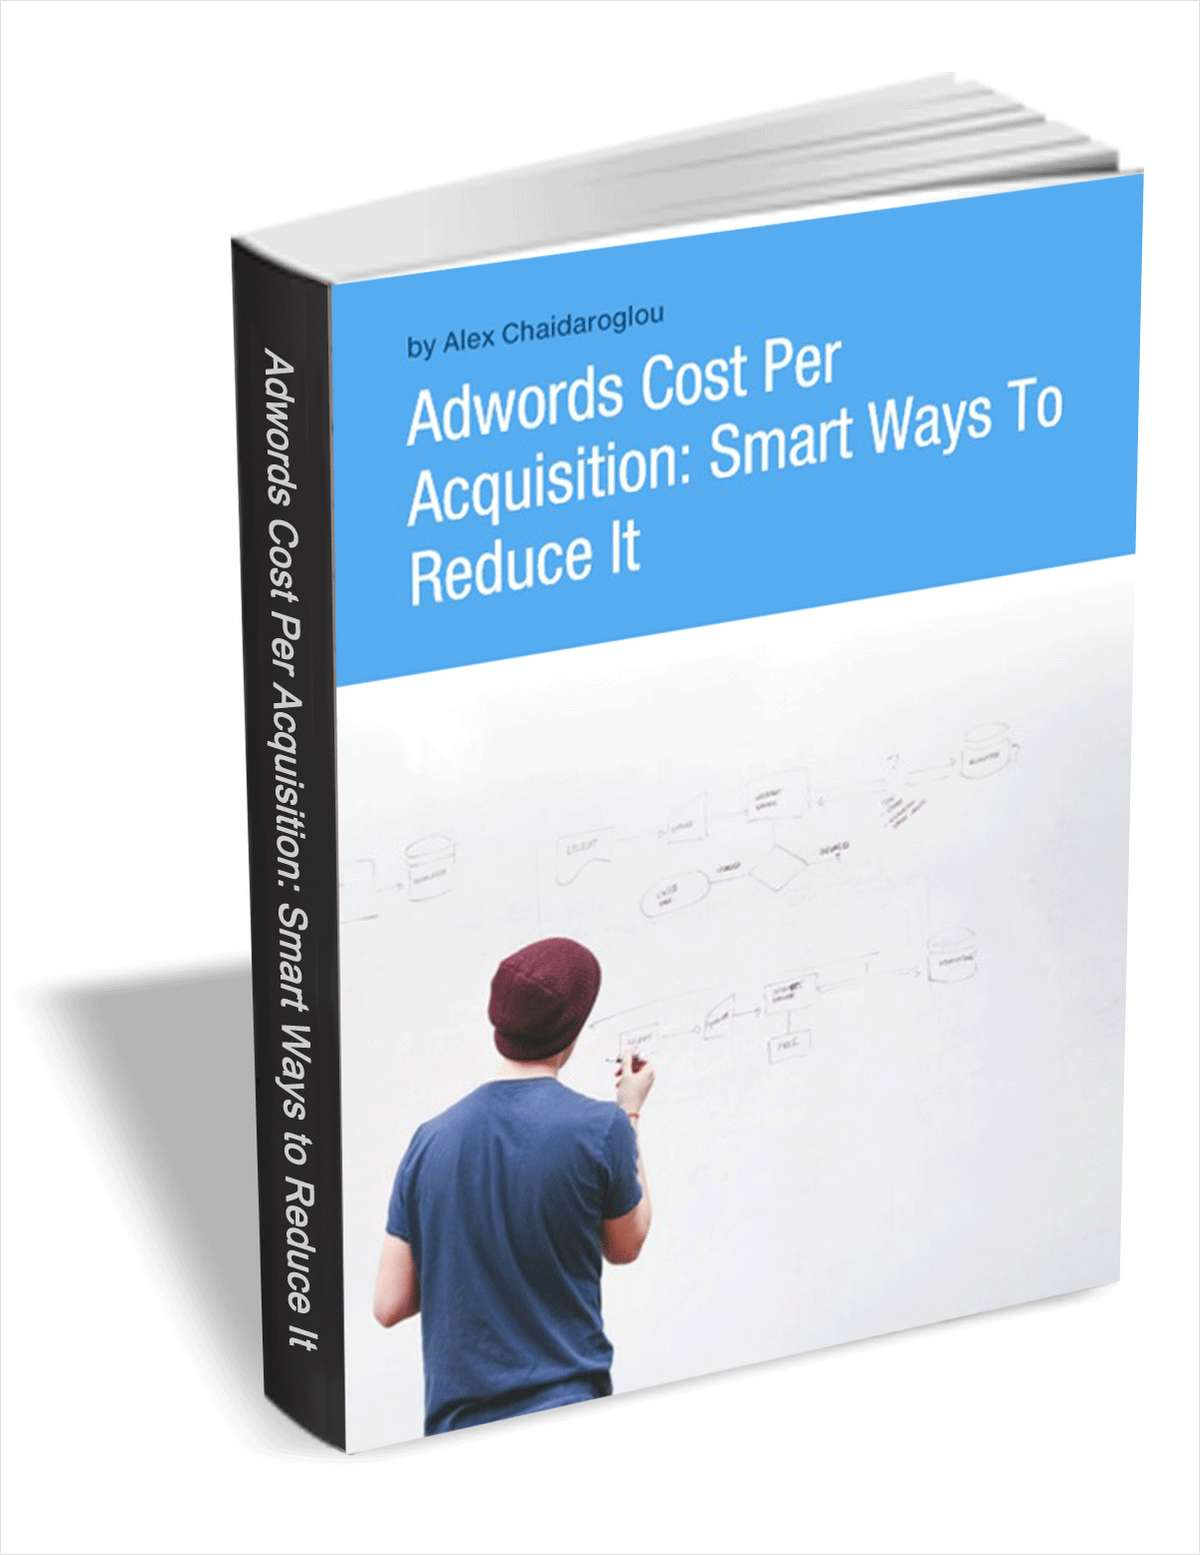 Adwords Cost Per Acquisition - Smart Ways To Reduce It